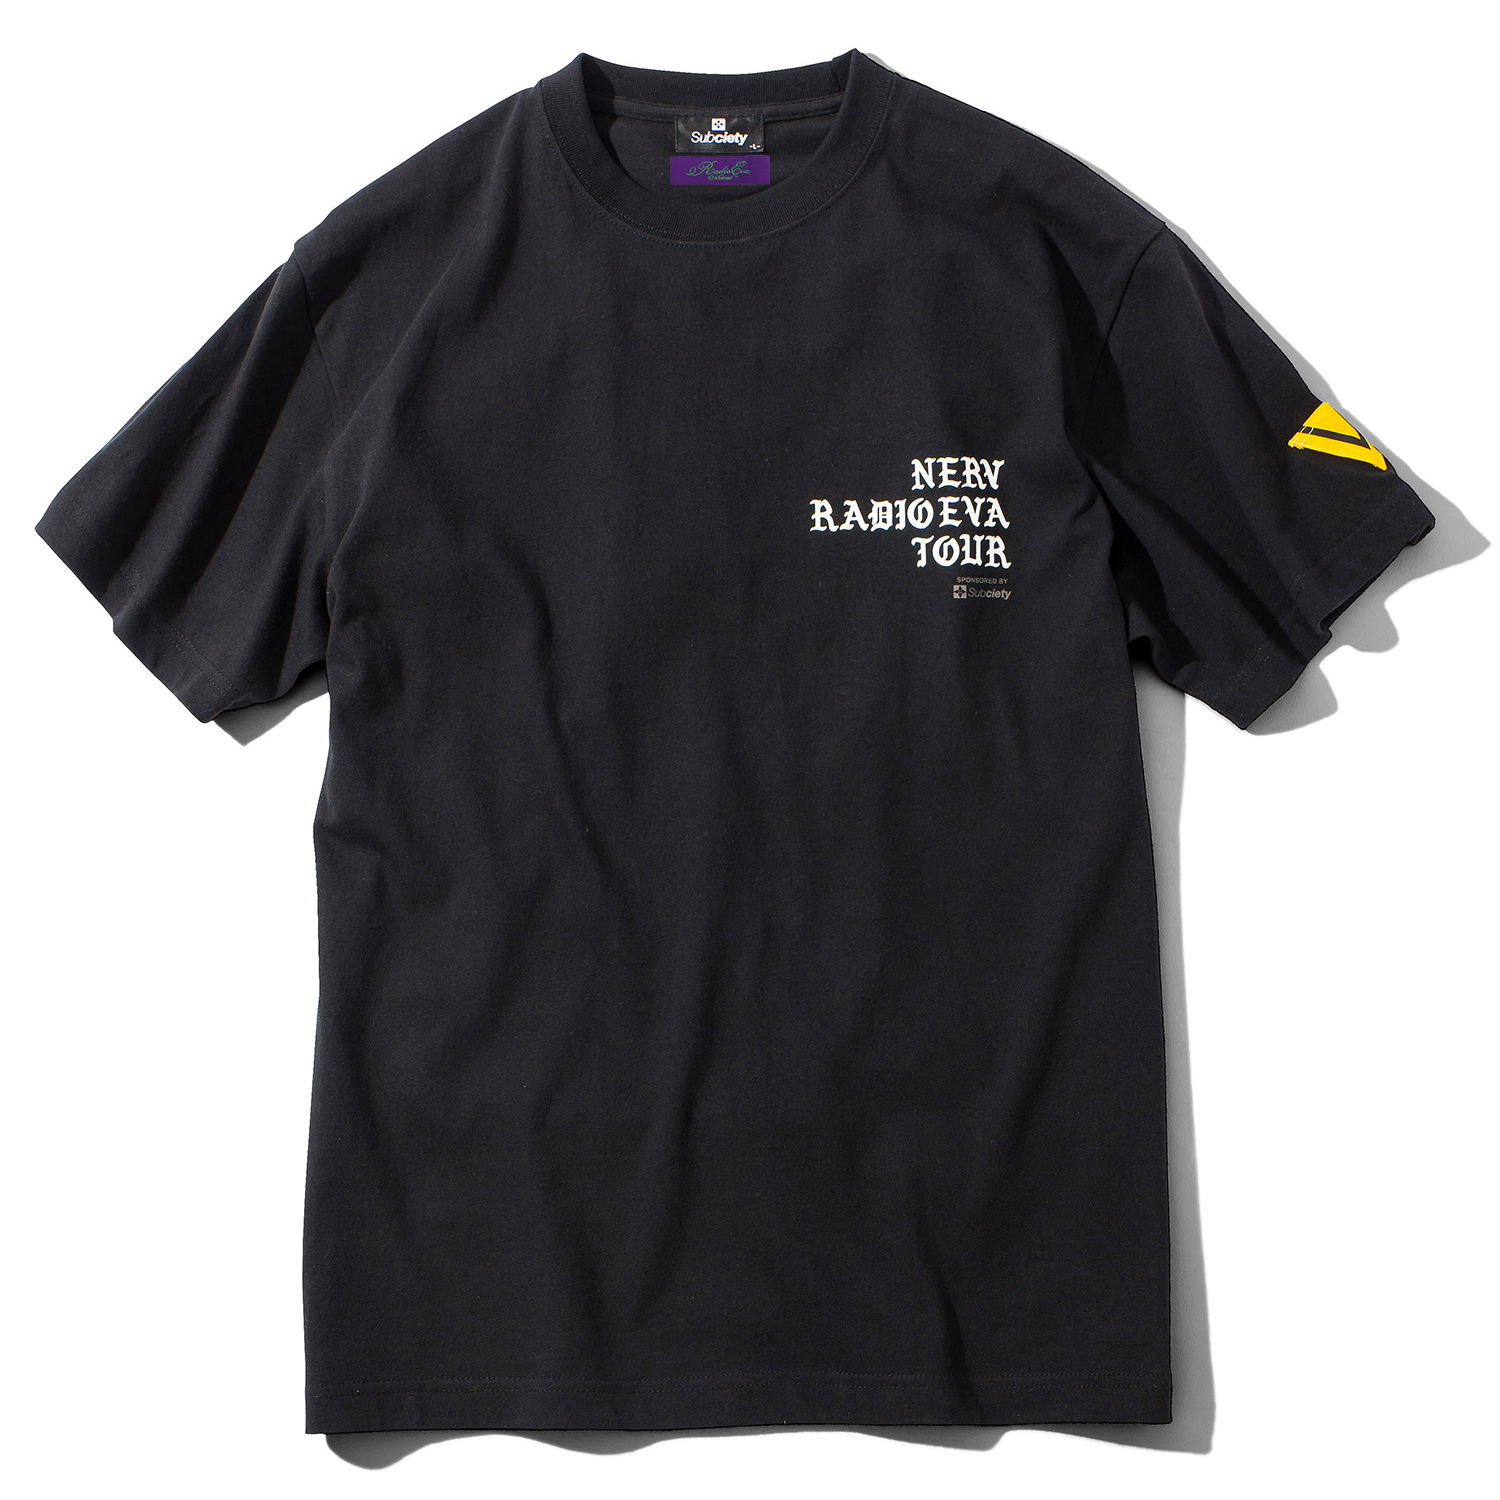 RADIO EVA TOUR S/S T-Shirt (BLACK/WHITE)